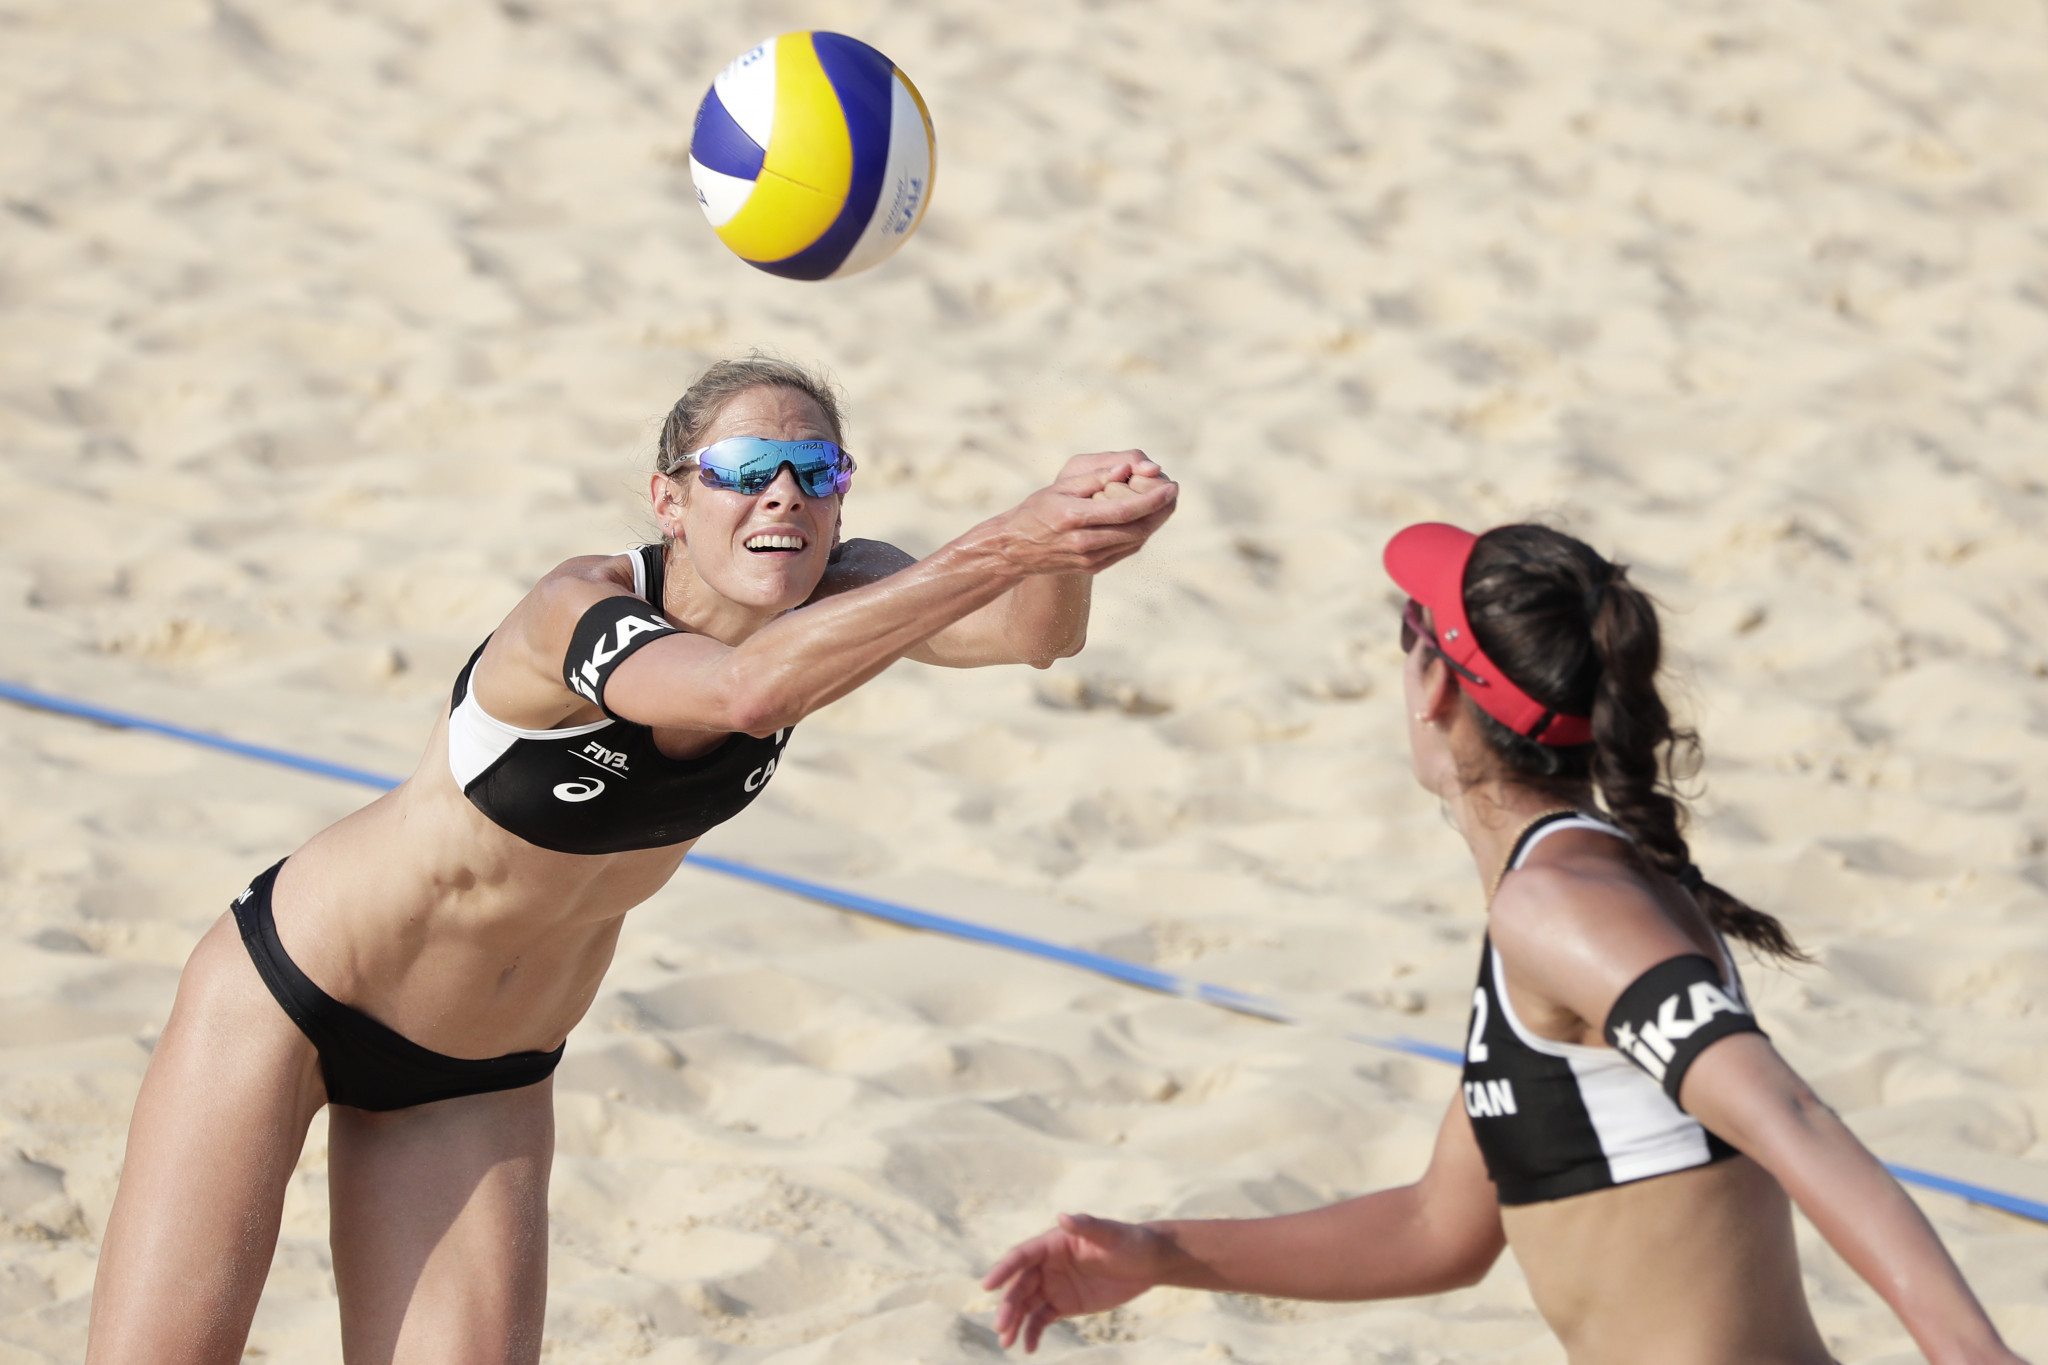 Sarah Pavan, left, and Melissa Humana-Paredes, right, won the women's FIVB Beach Volleyball World Championship in 2019 ©Getty Images